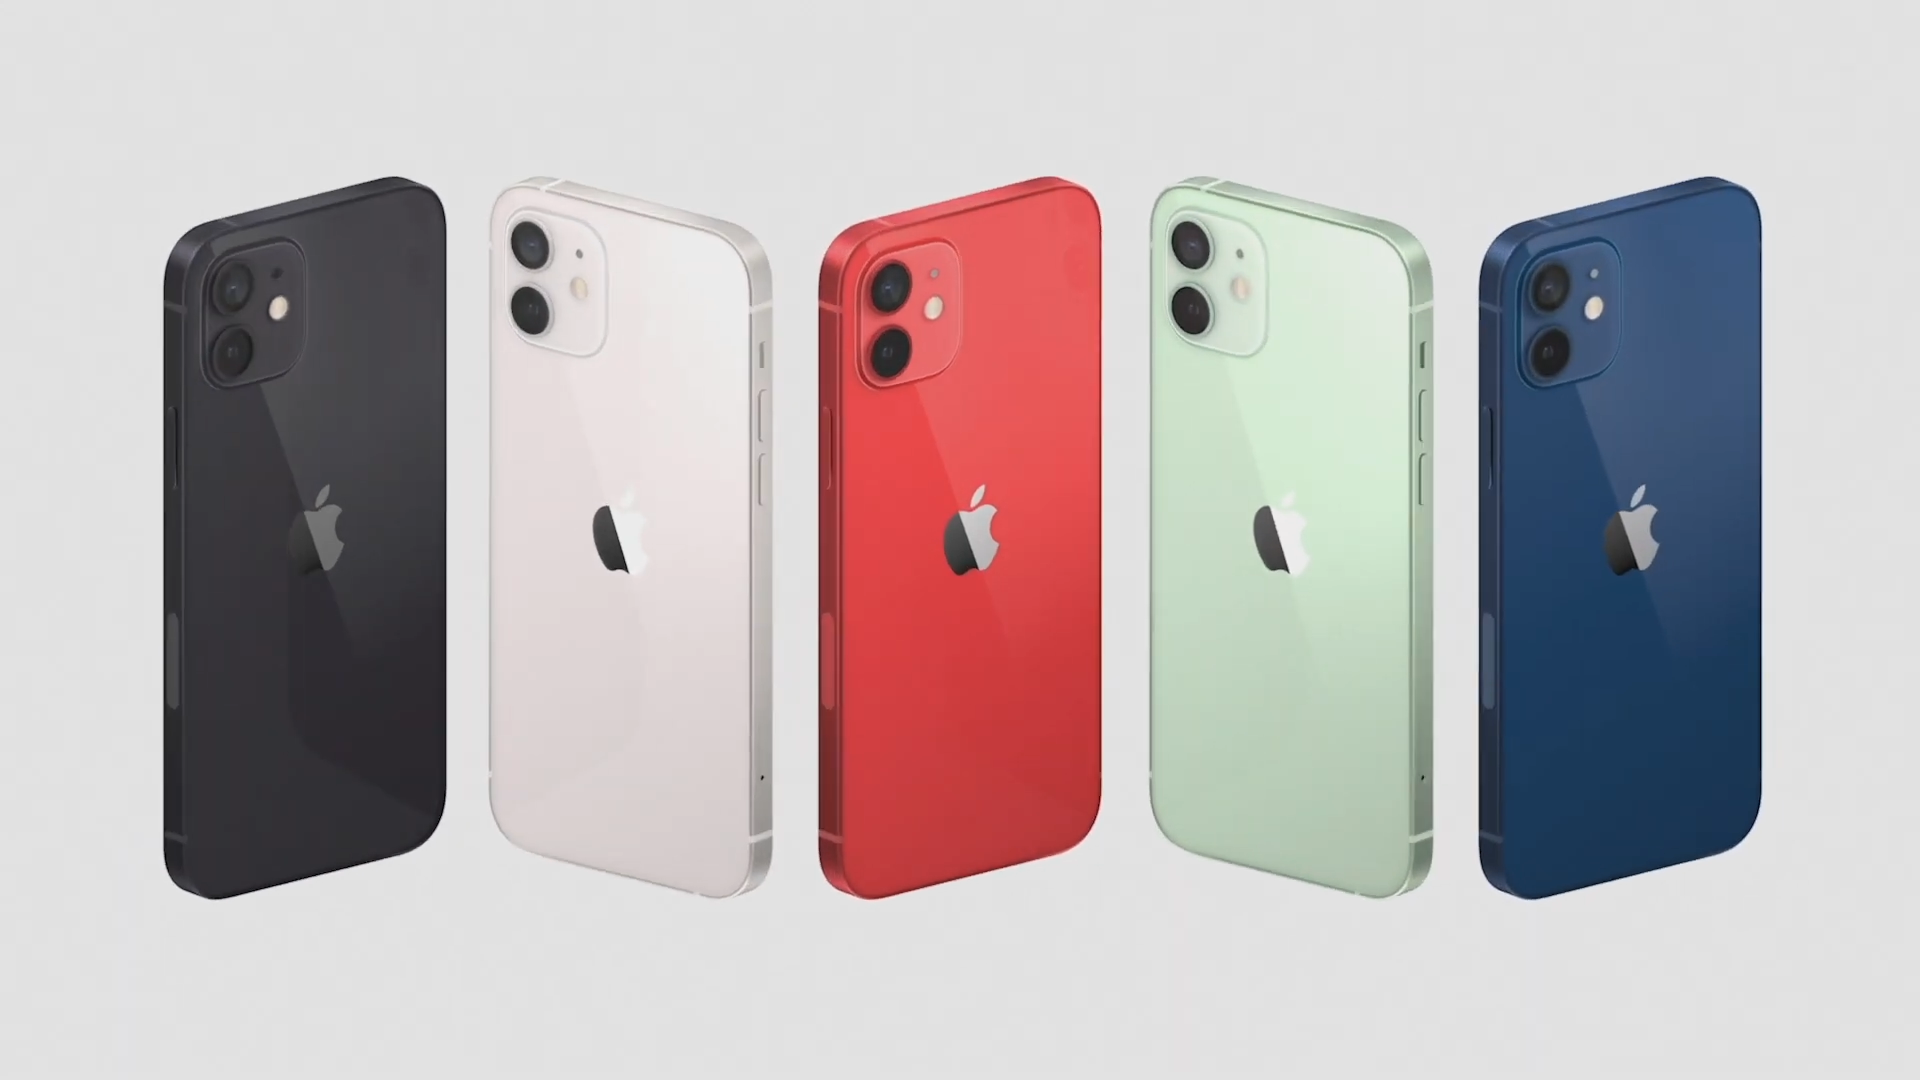 watch-apples-entire-iphone-12-event-in-12-minutes-supercut-mp4-00-00-48-06-still001.png